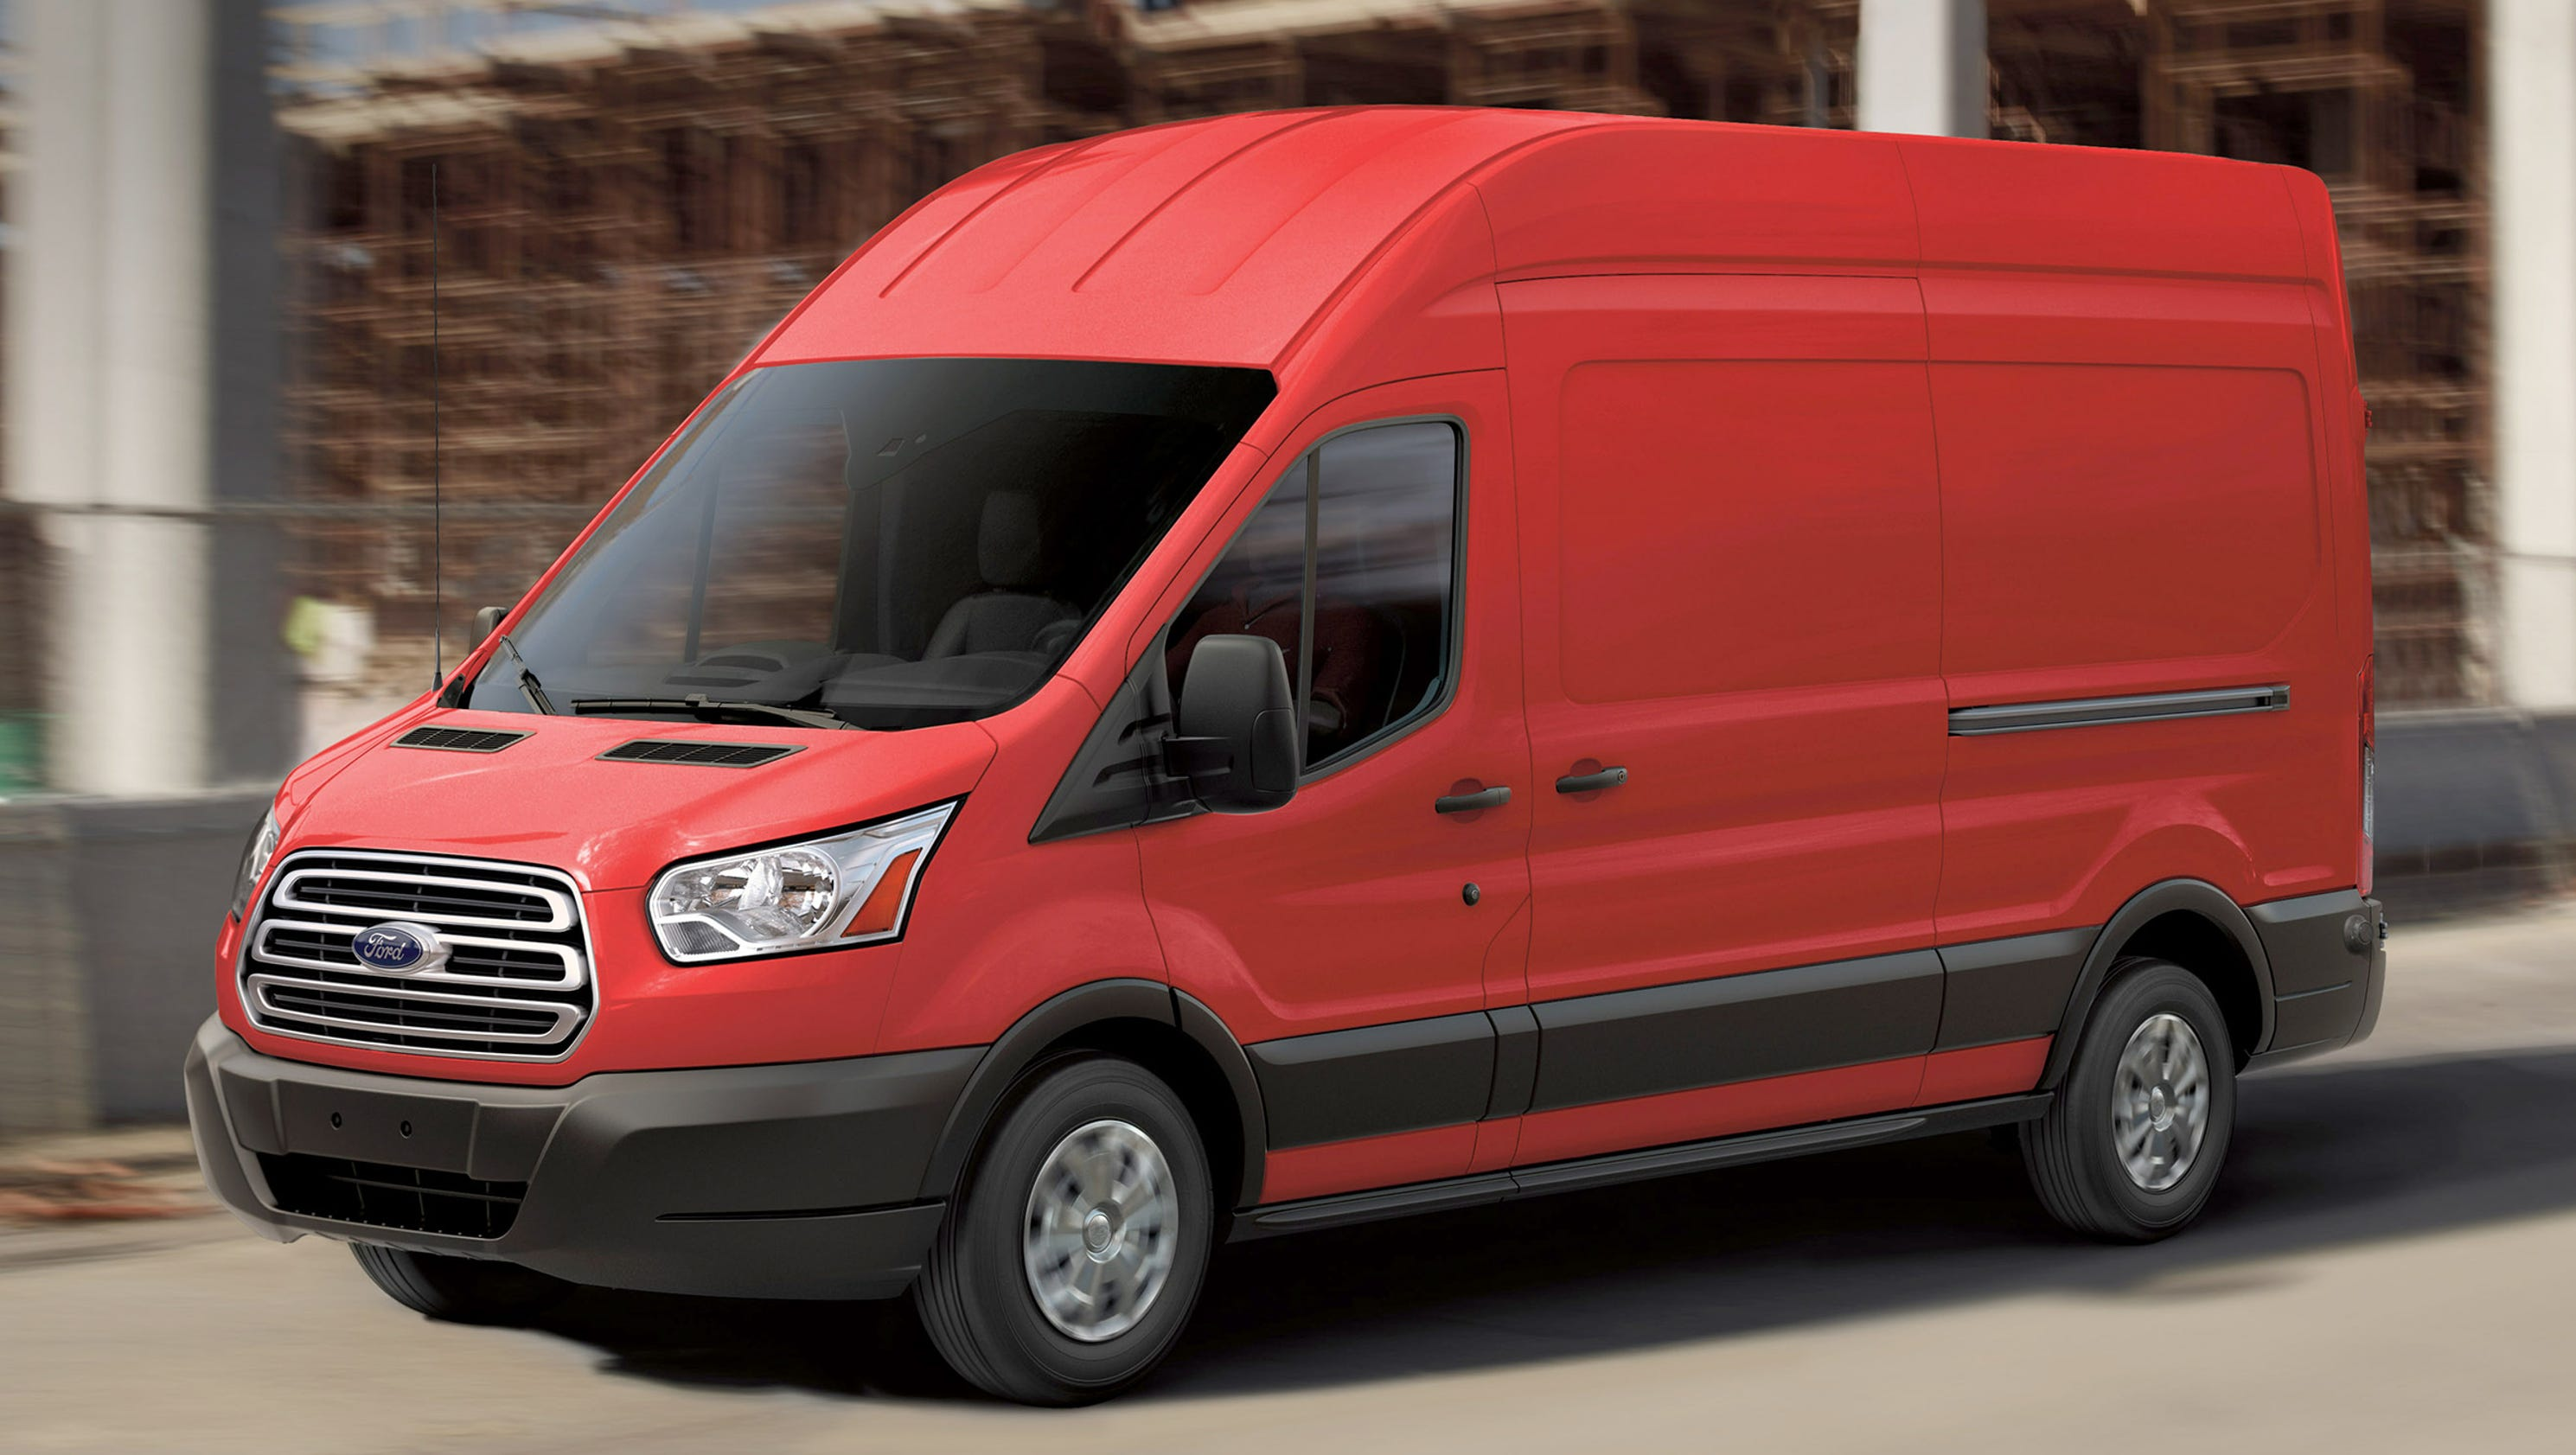 free ford blueprints outlines transit van